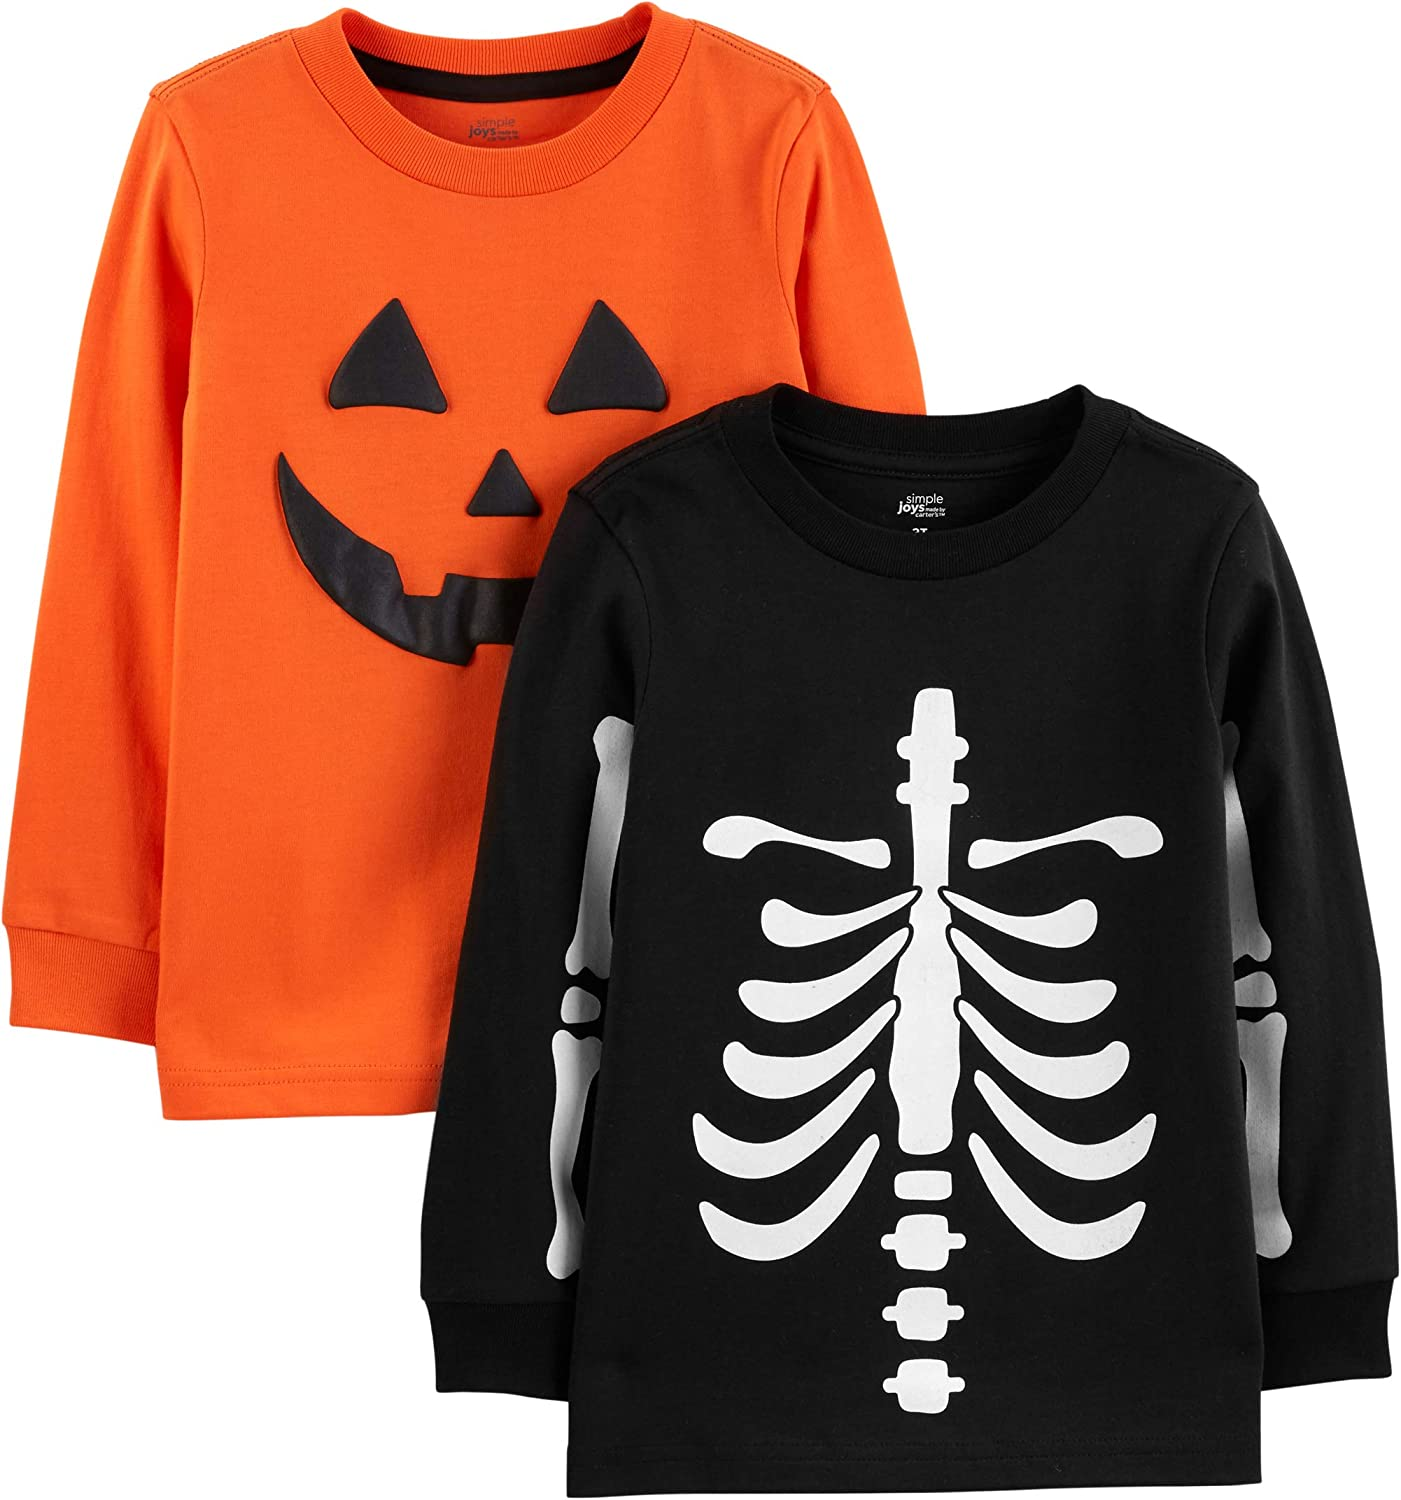 Simple free shipping Joys by Carter's Toddler Long-Slee Boys' 2-Pack Detroit Mall Halloween